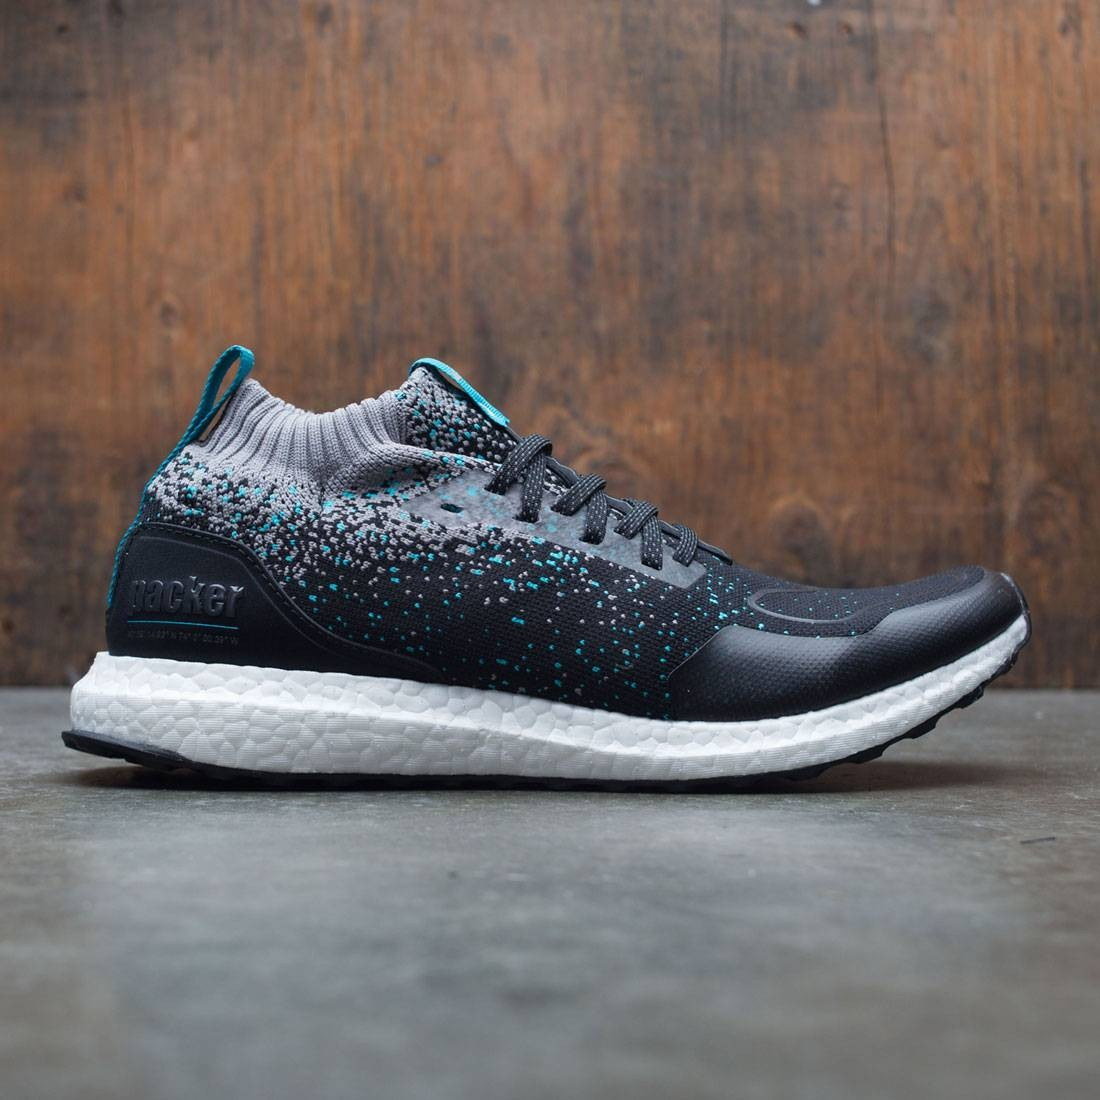 e889e027d959f Adidas Consortium x Packer x Solebox Men UltraBOOST Mid Sneaker Exchange  black core black energy blue